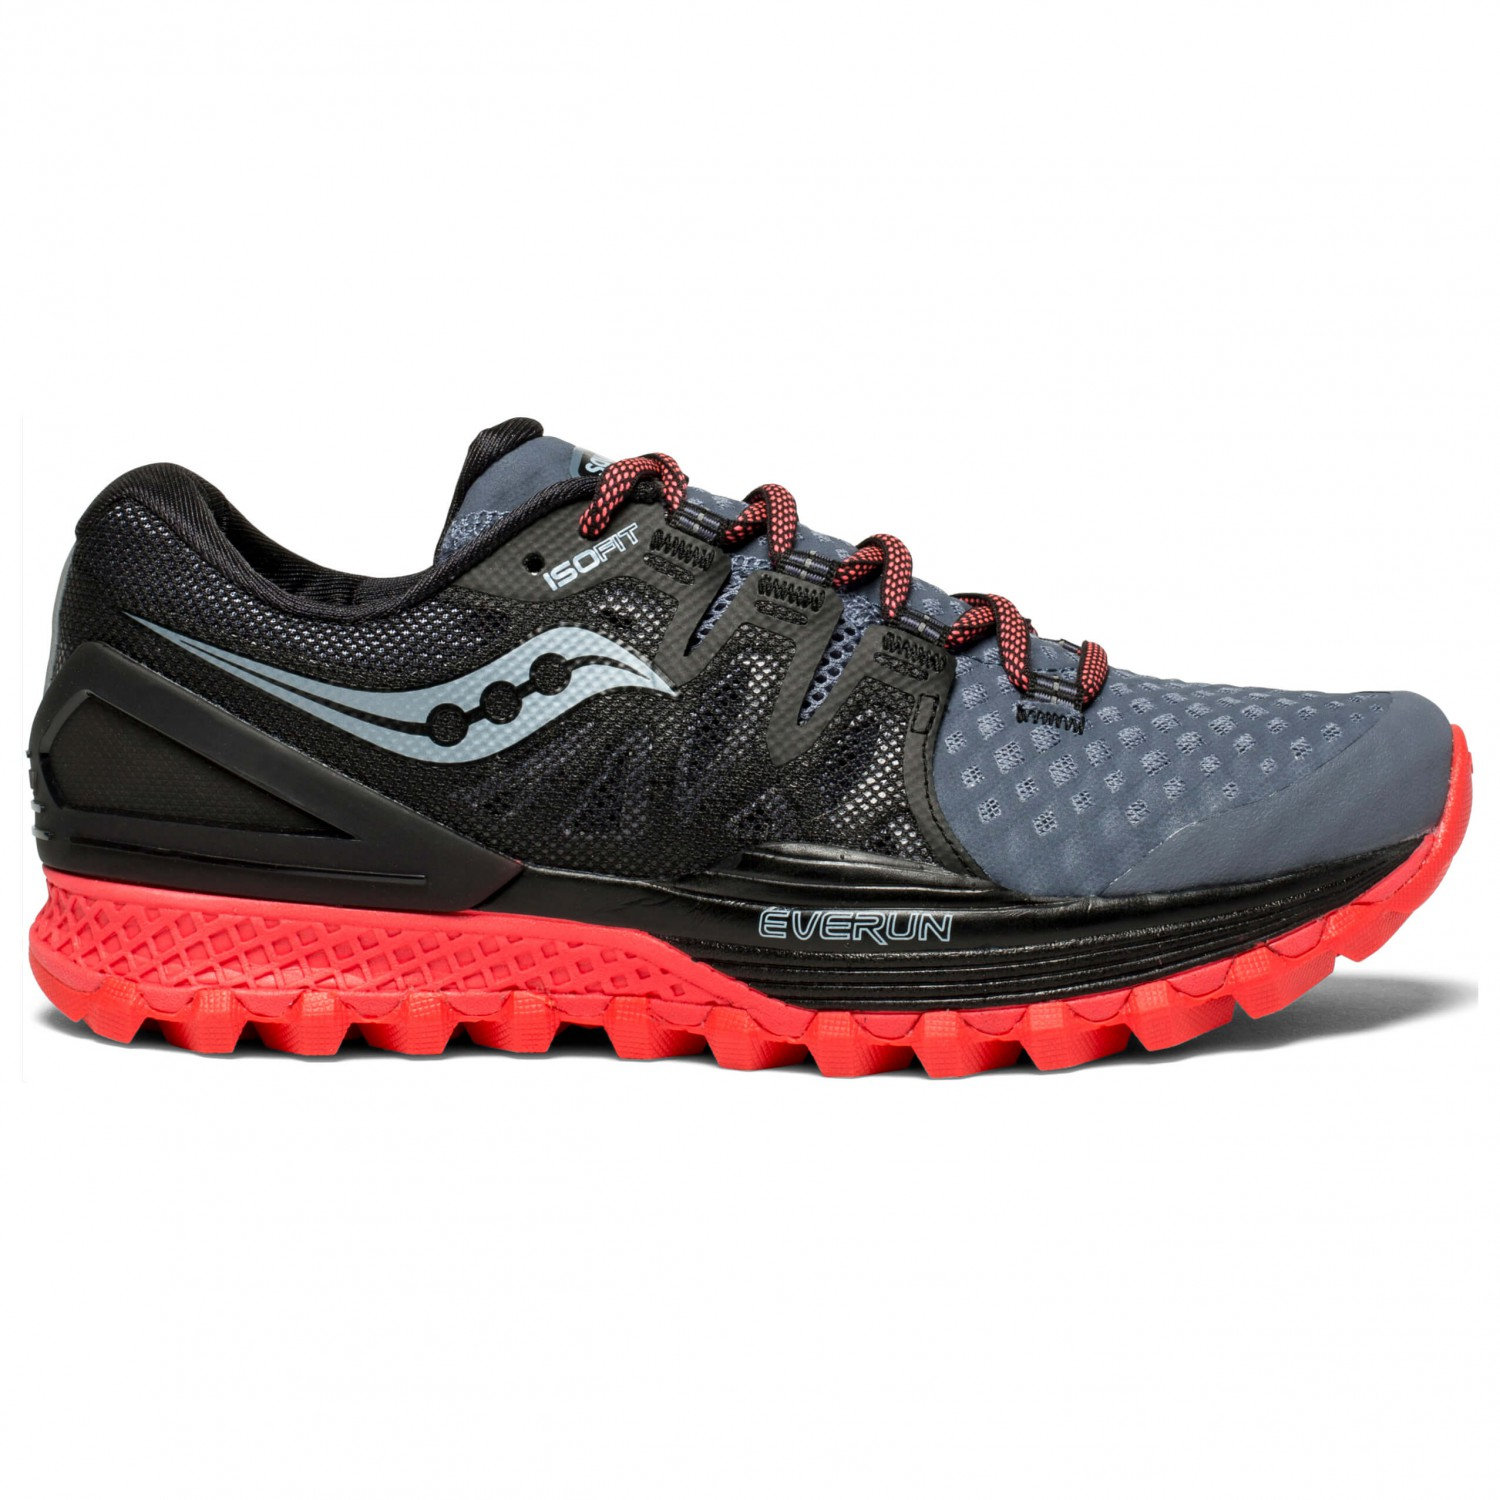 Xodus Scarpe Vizi Trail 2 Running Black Iso Per Saucony Women's Red6 0us Grey WEH2IYD9